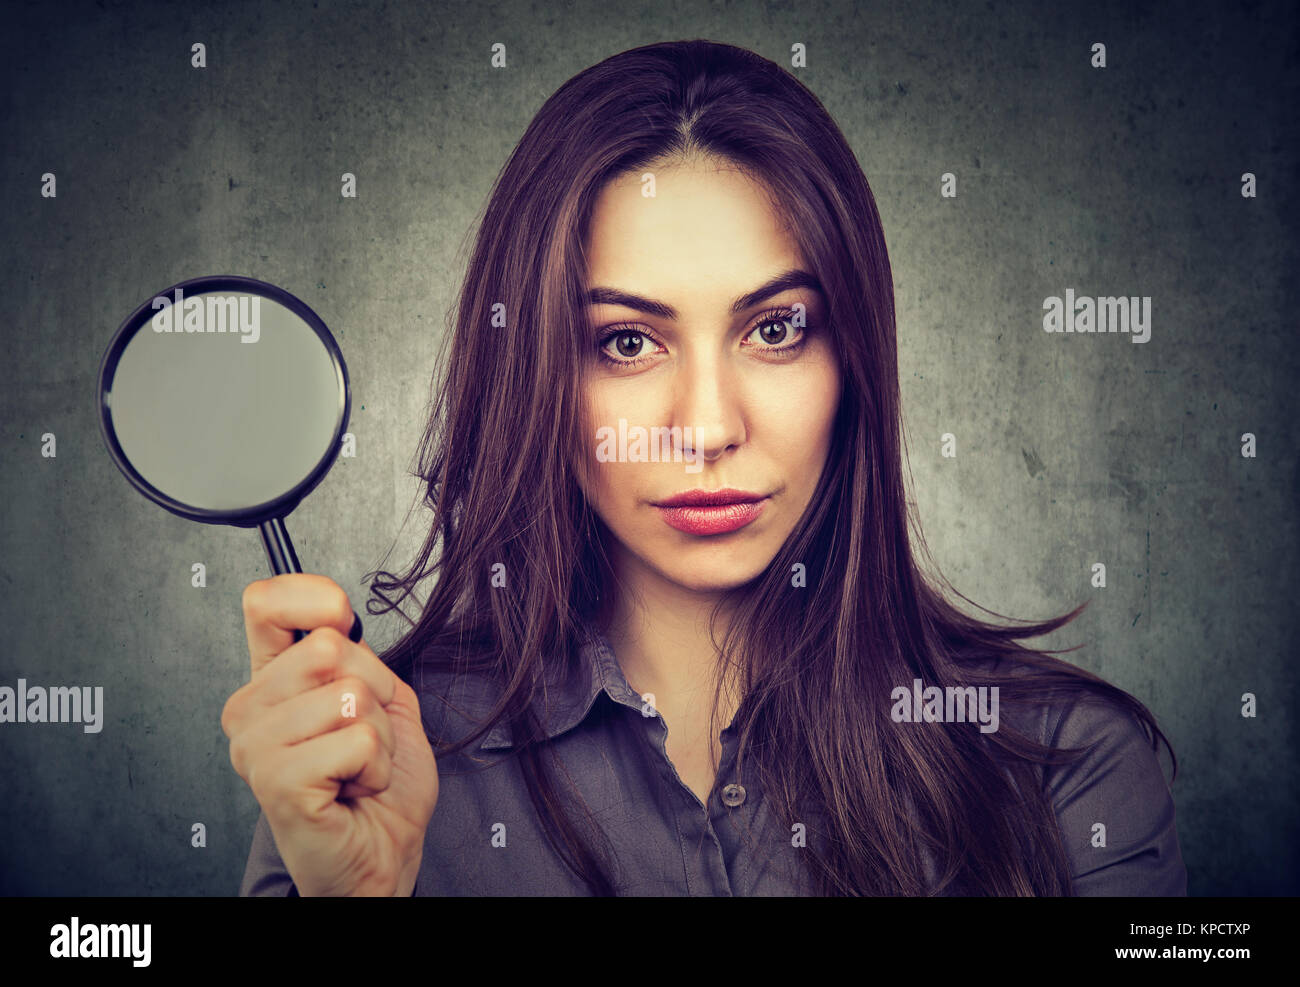 Young determined model holding magnifier and looking seriously at camera. - Stock Image